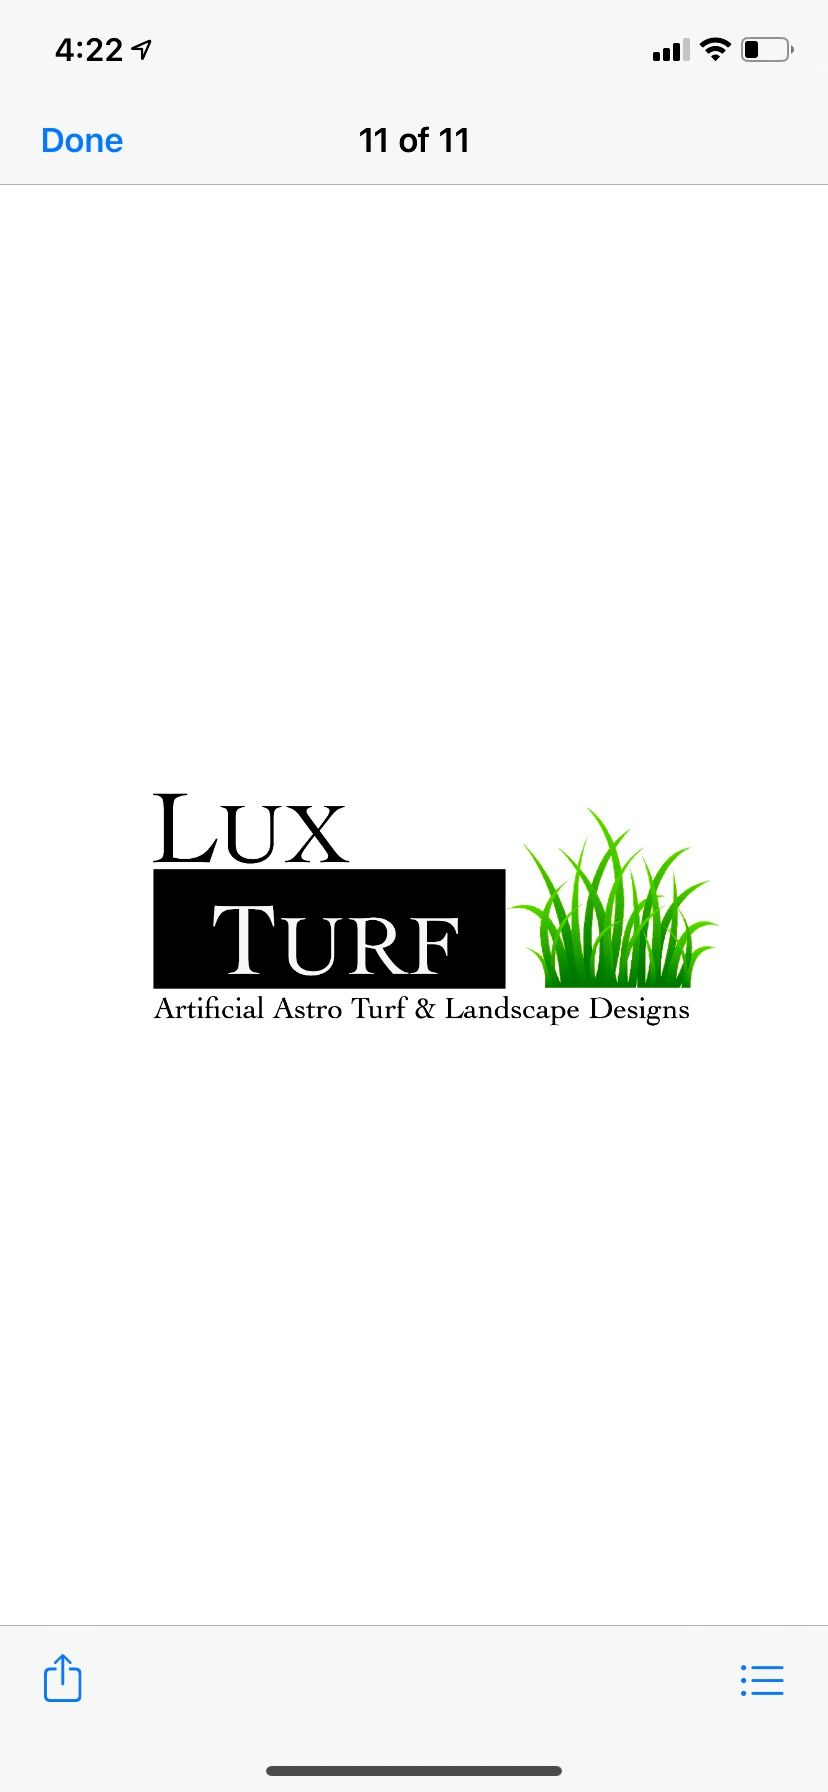 Lux Turf